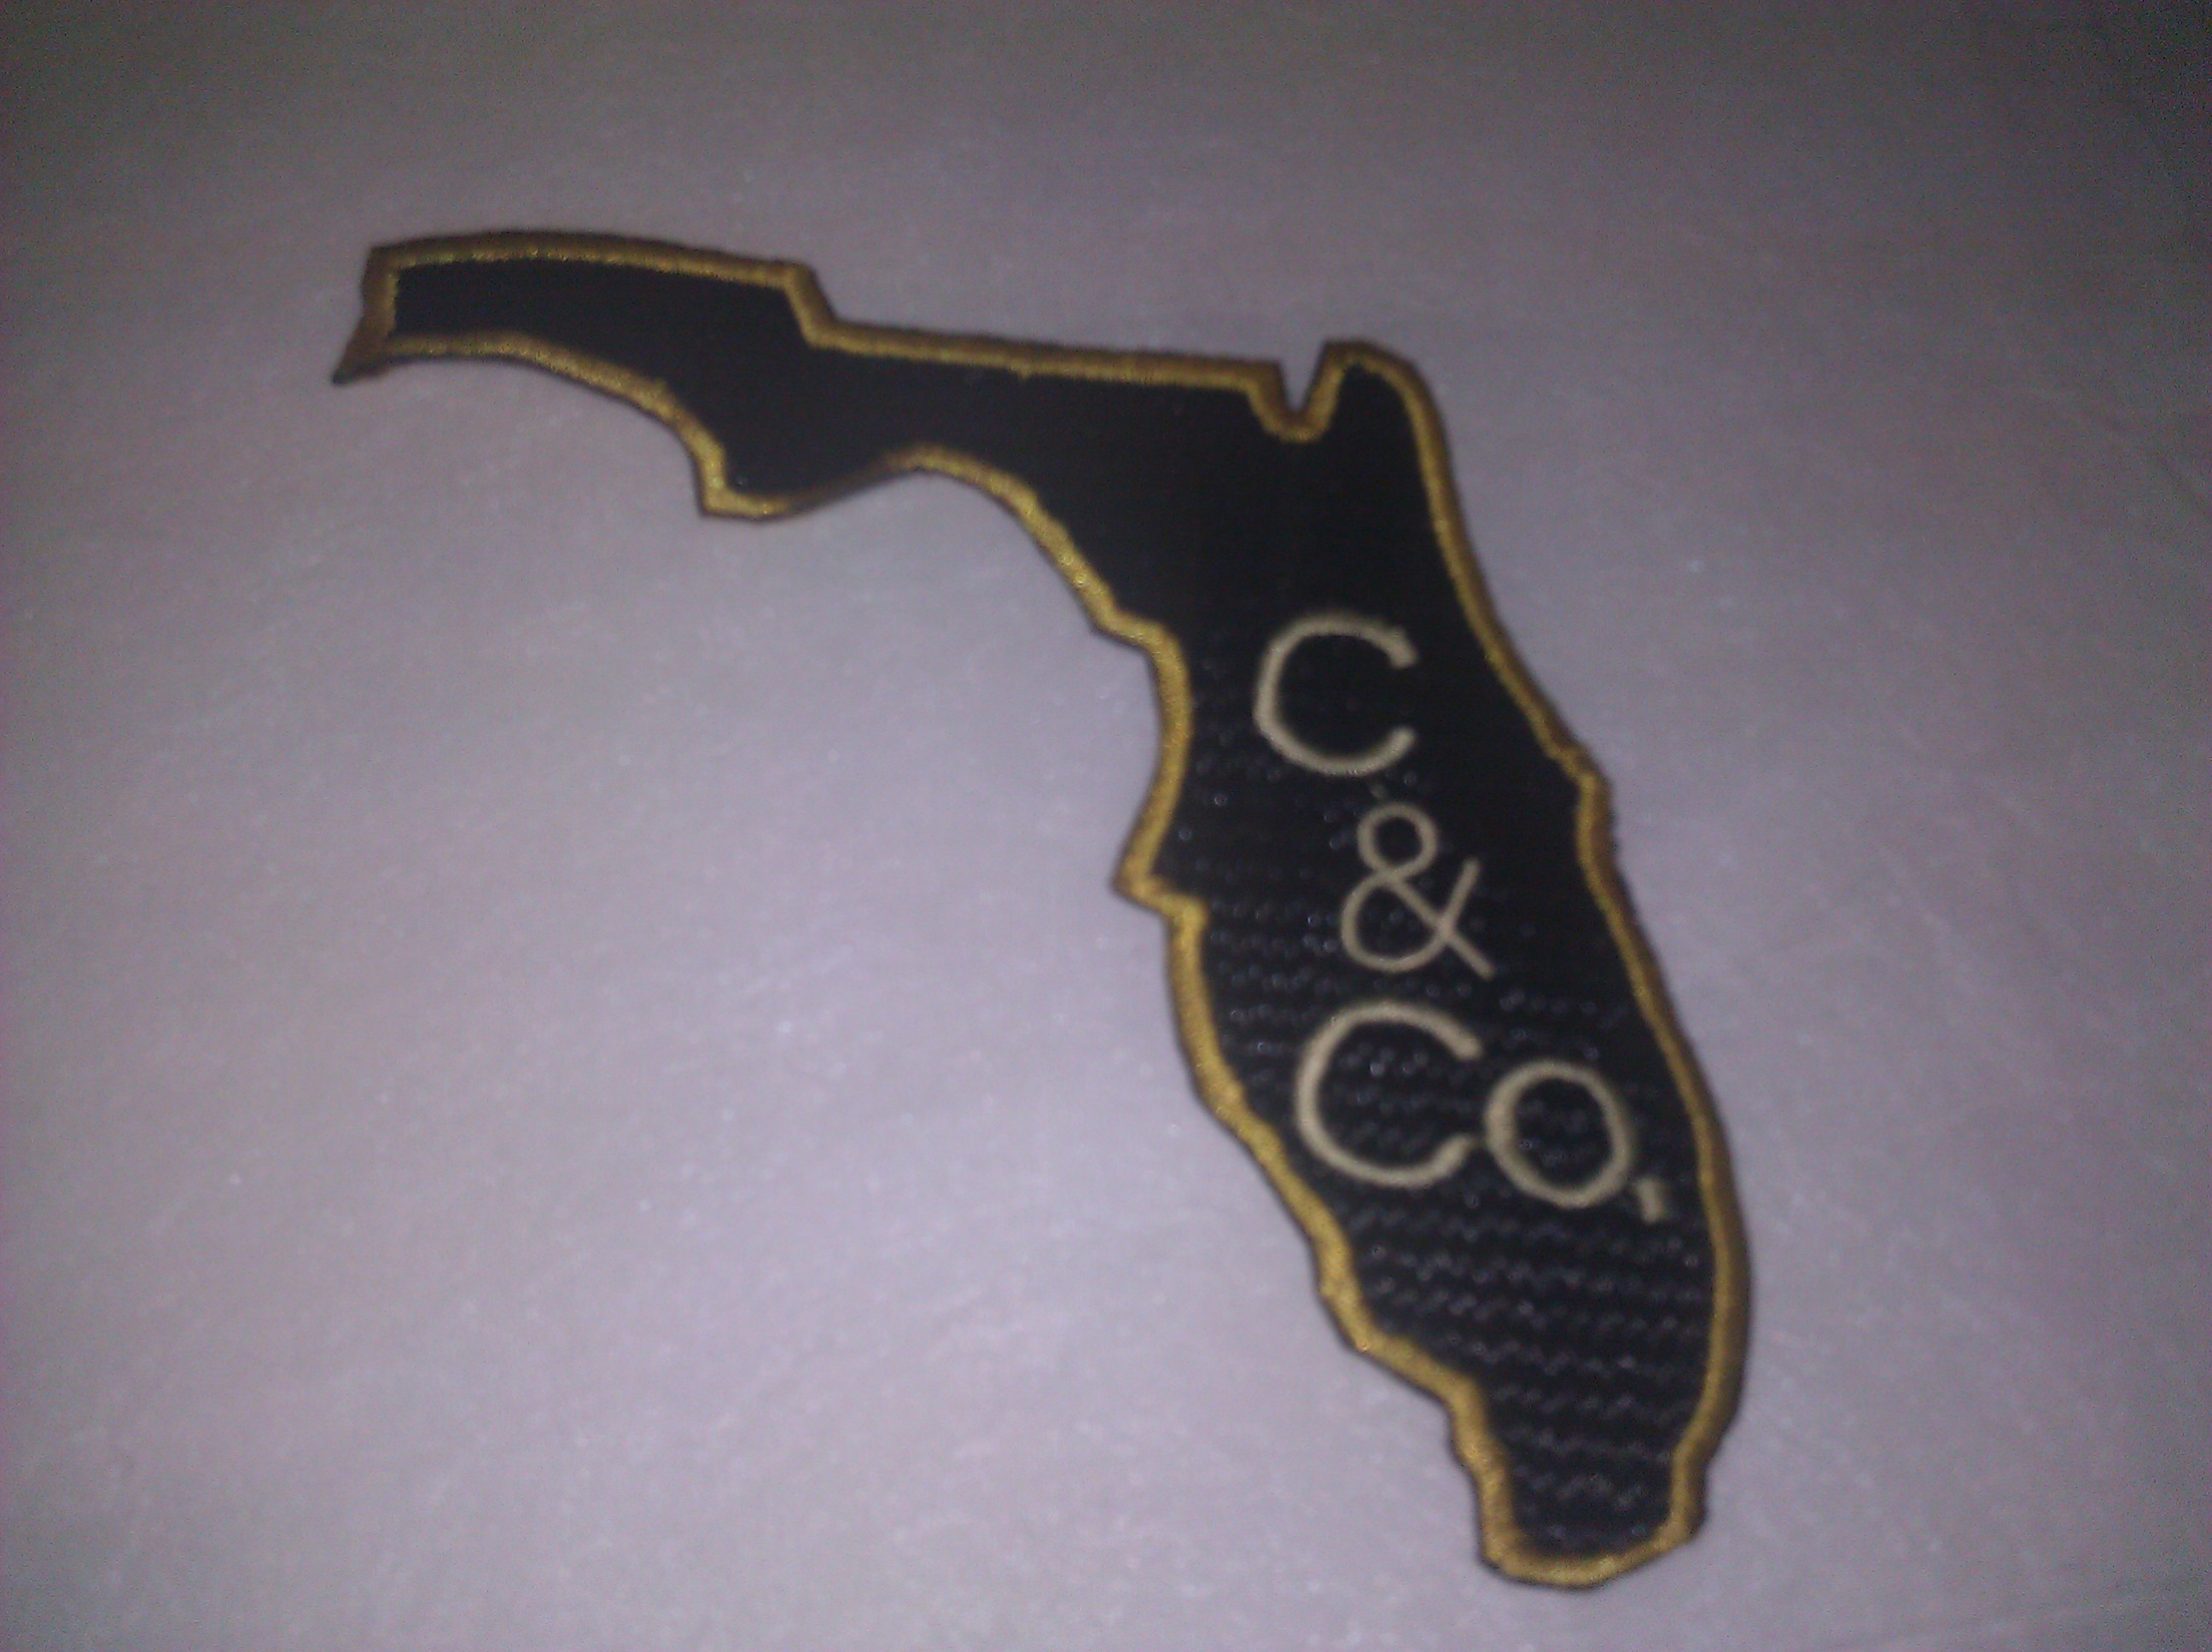 Small lettering on commercial embroidery is a challenge, and doing it right demonstrates your commitment to quality.